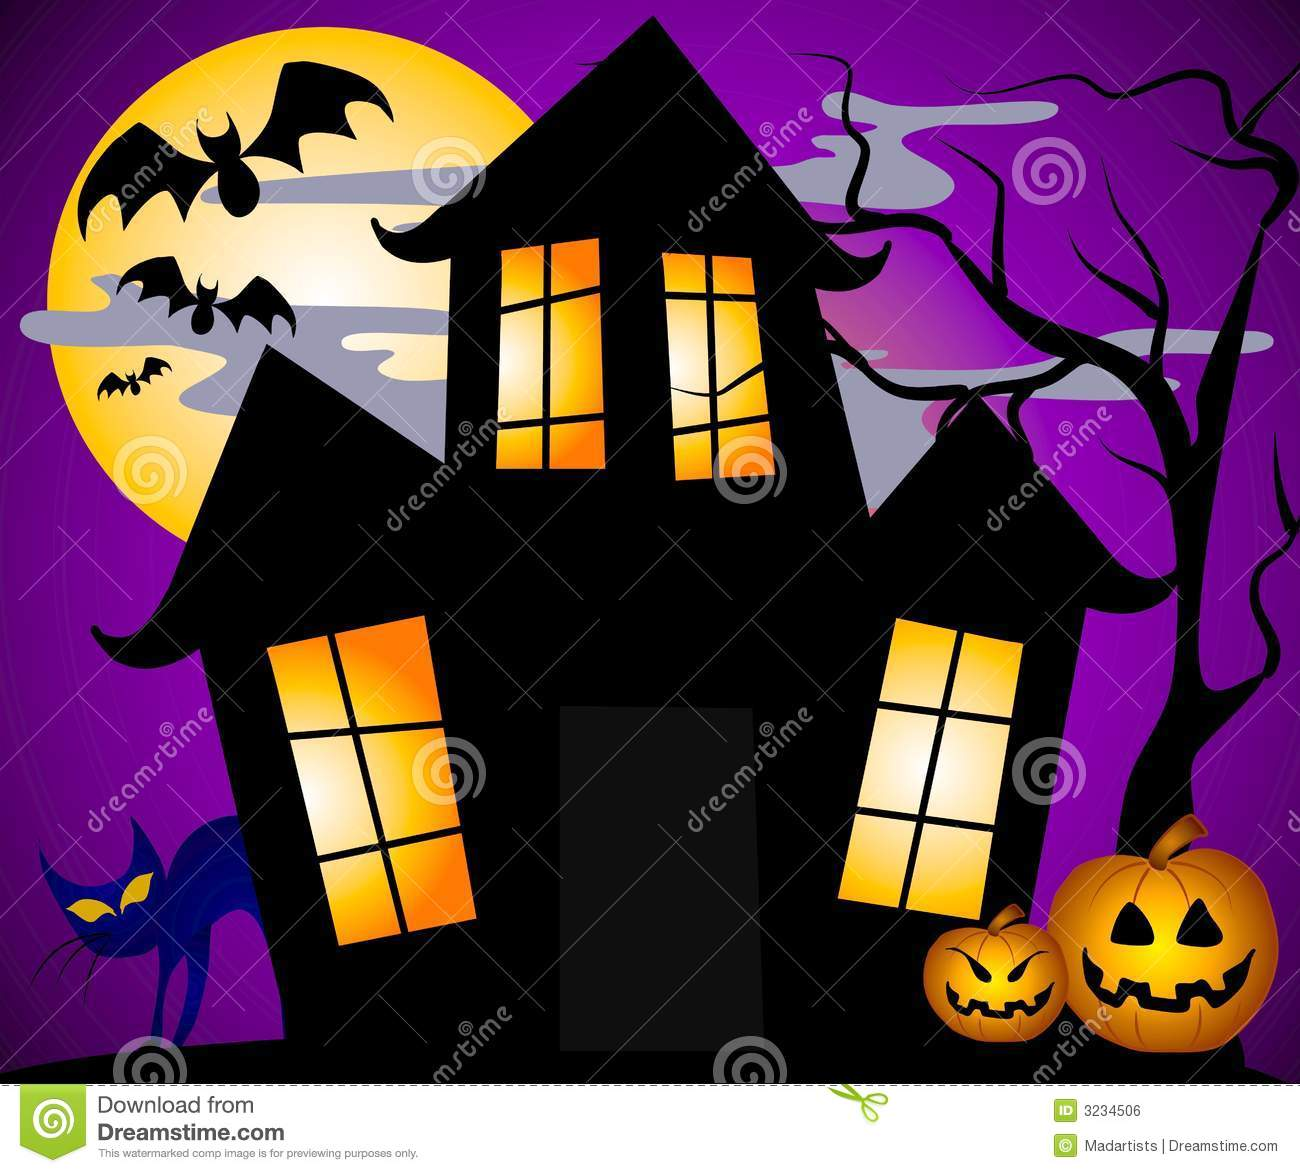 Haunted house scene clipart.